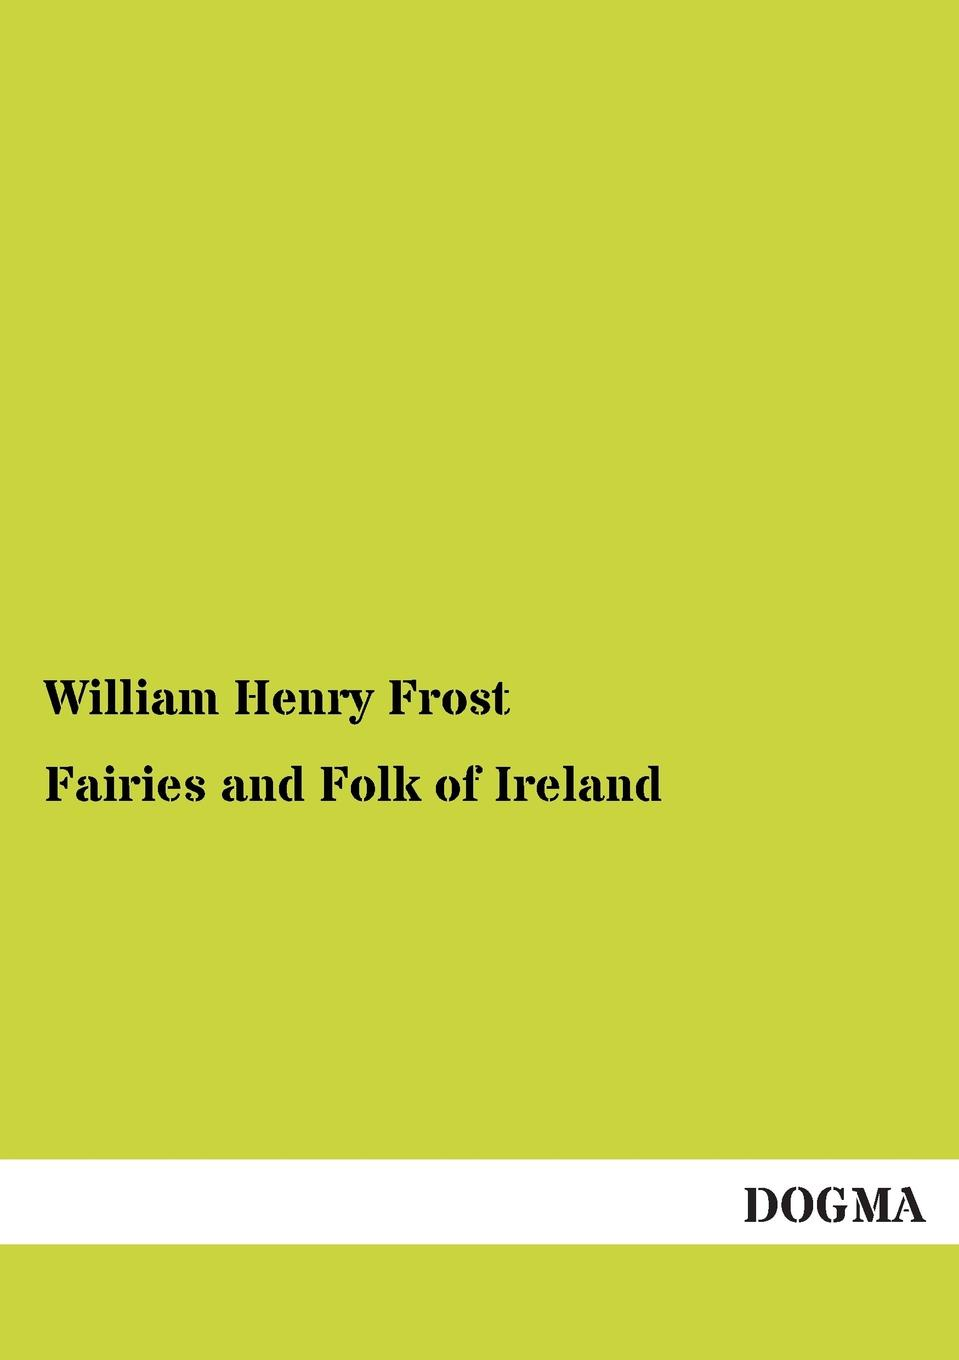 Fairies and Folk of Ireland legends and tales of the american west